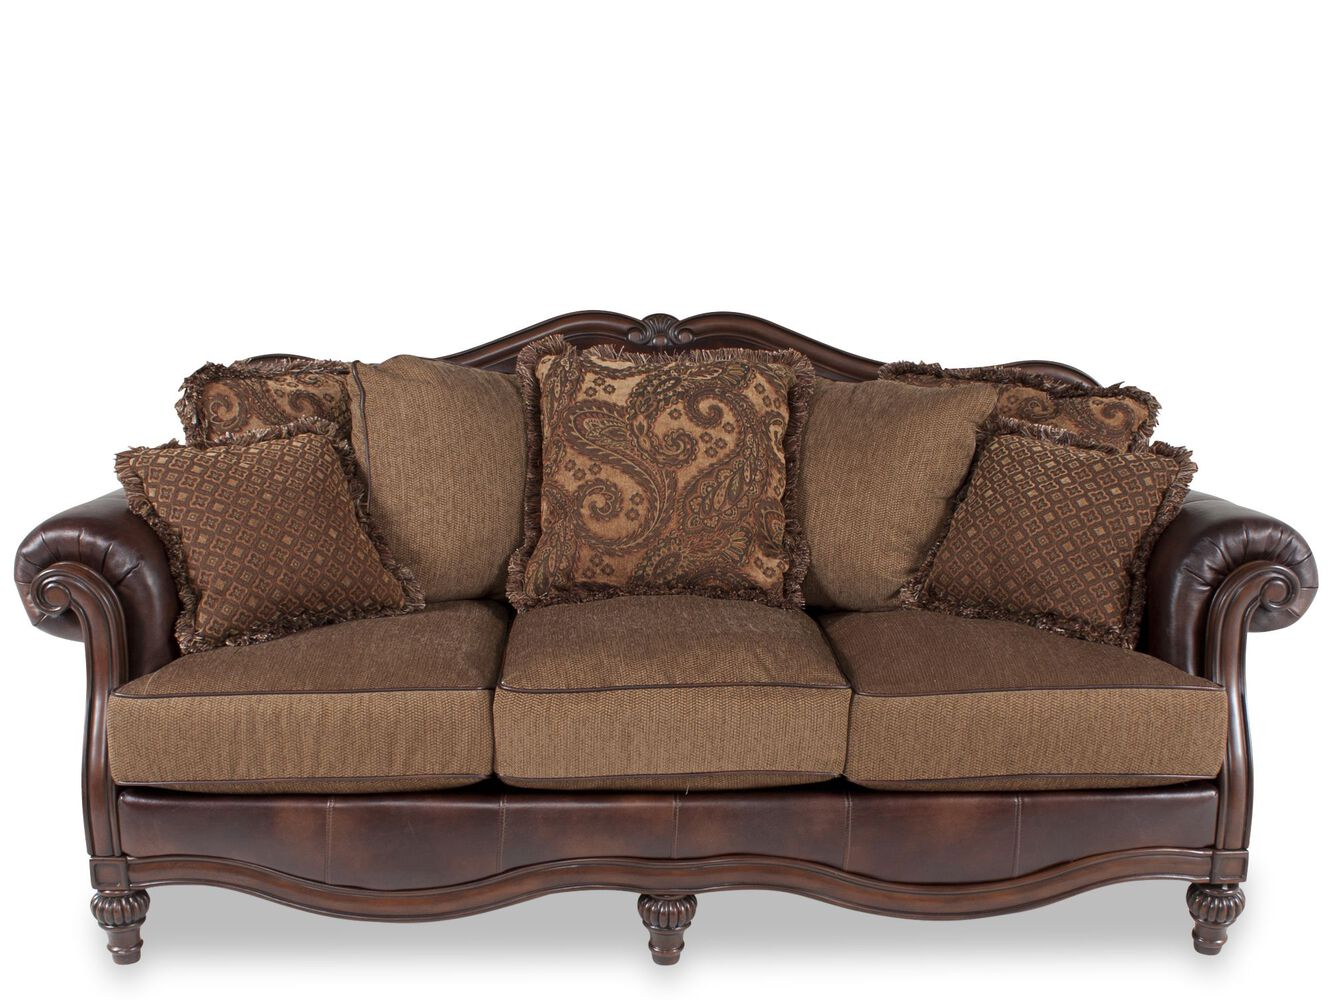 Ashley clairemore antique sofa mathis brothers furniture for Mathis brothers living room furniture sectional sofas